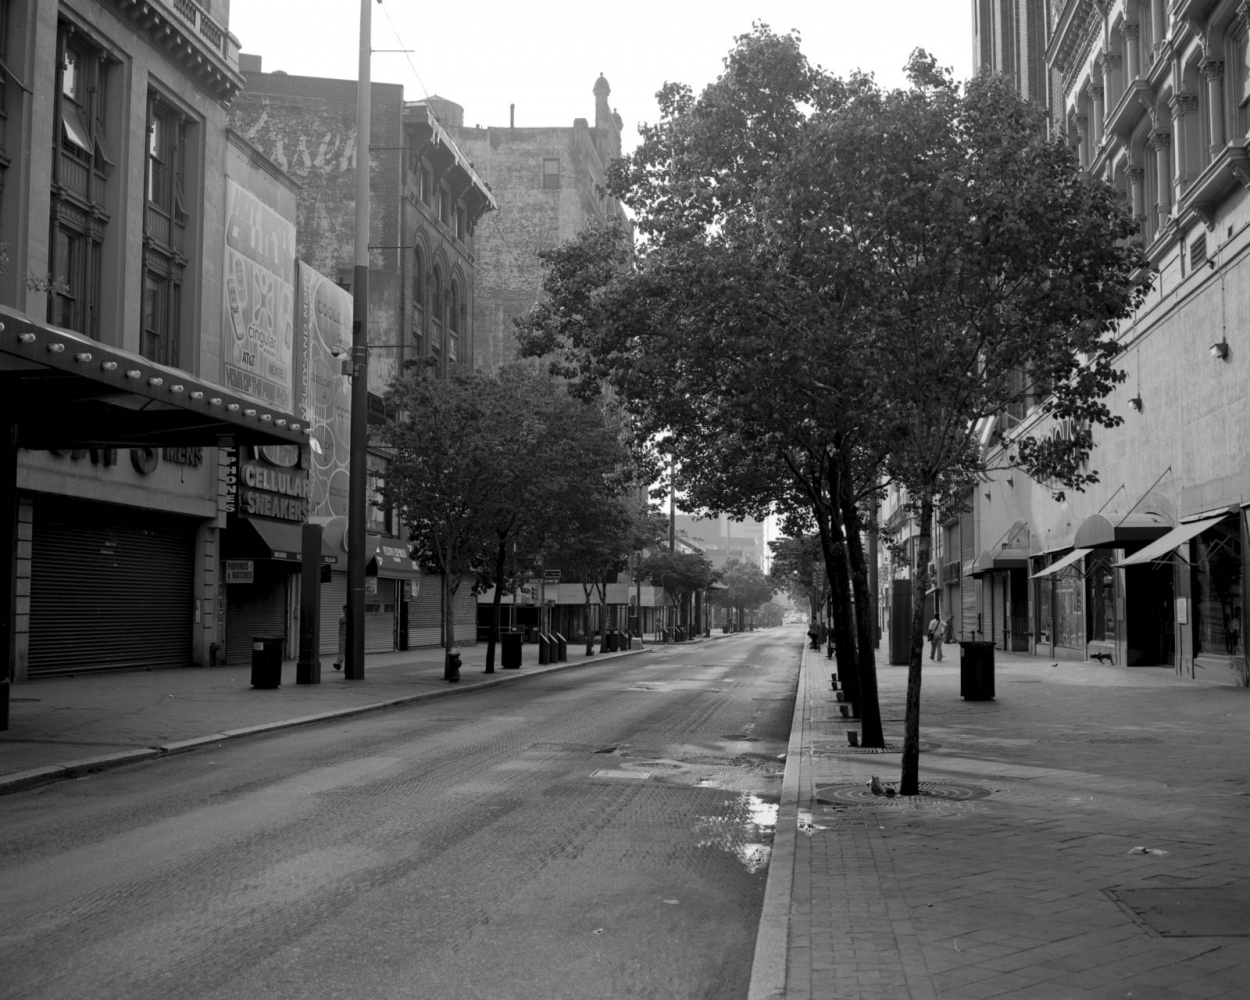 Fulton Street near Gallatin Place, looking East, May 2007